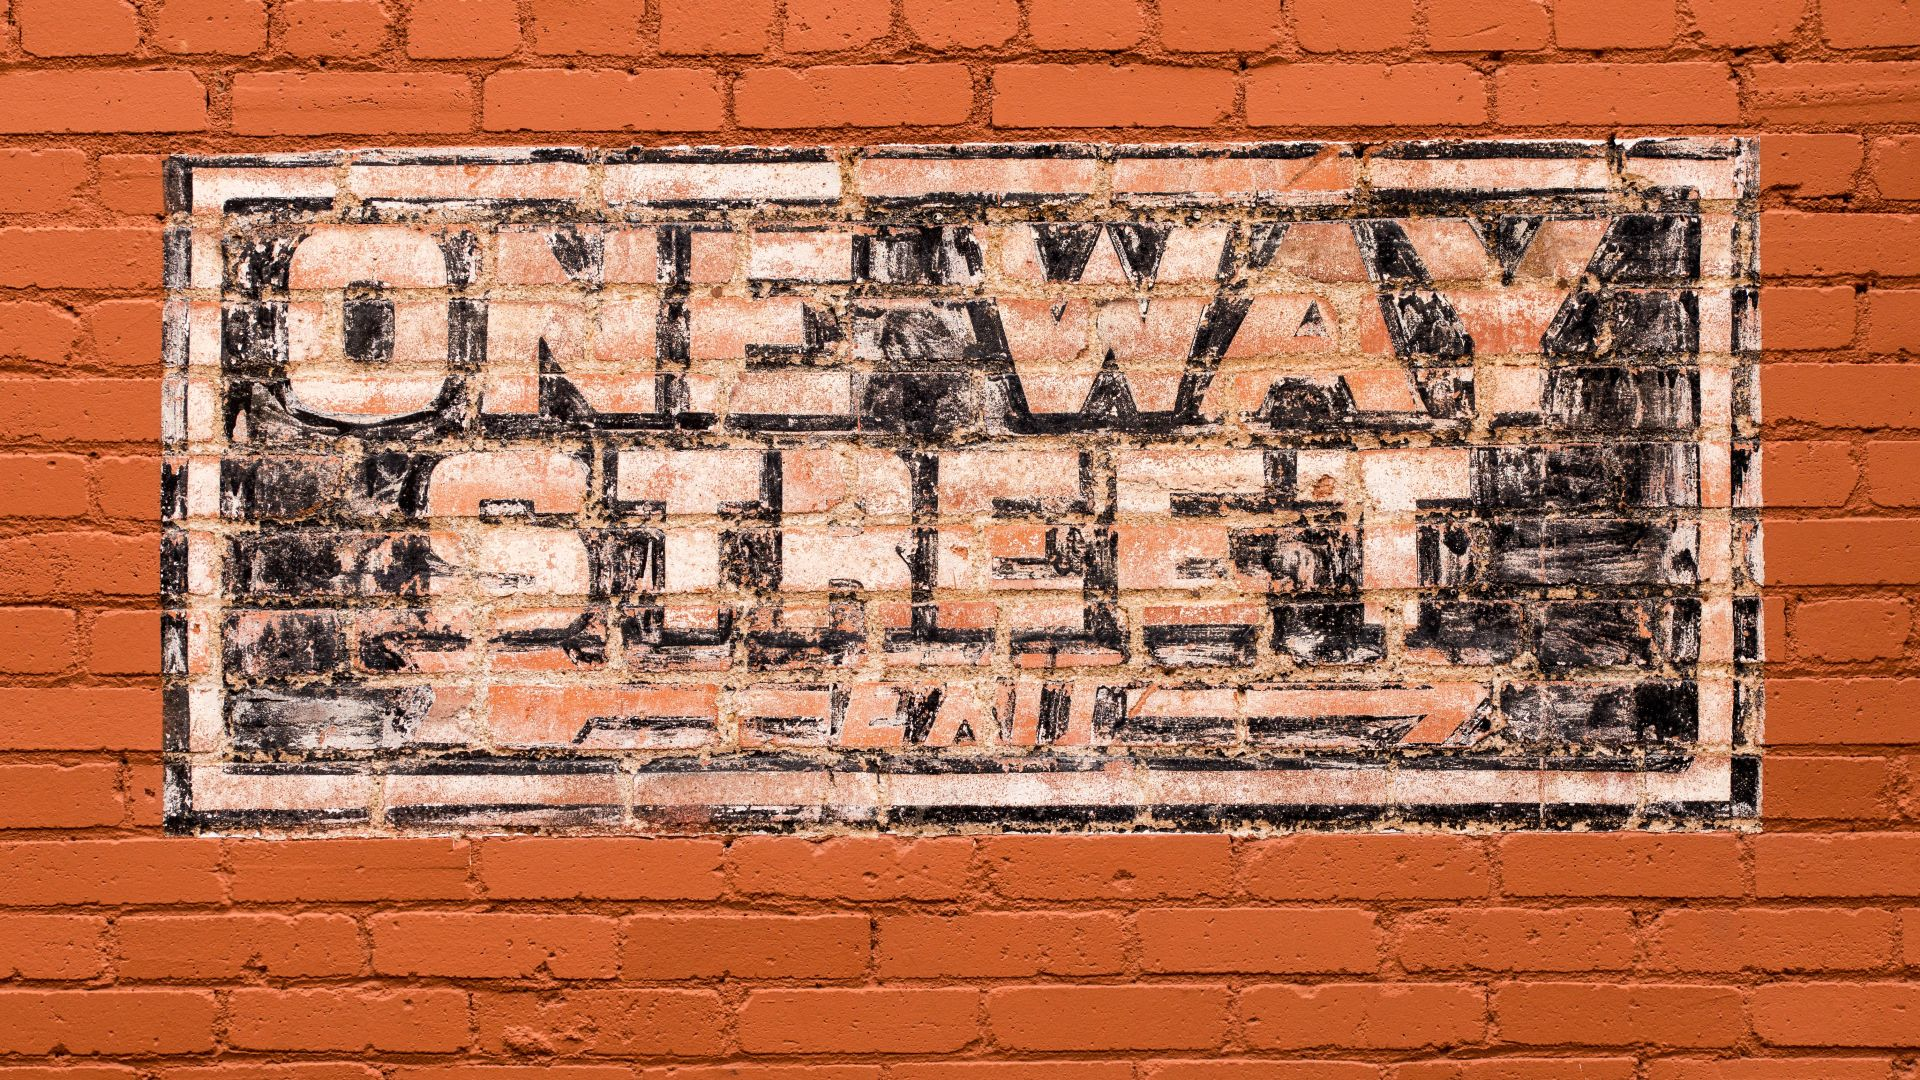 One way street painted sign on brick wall.